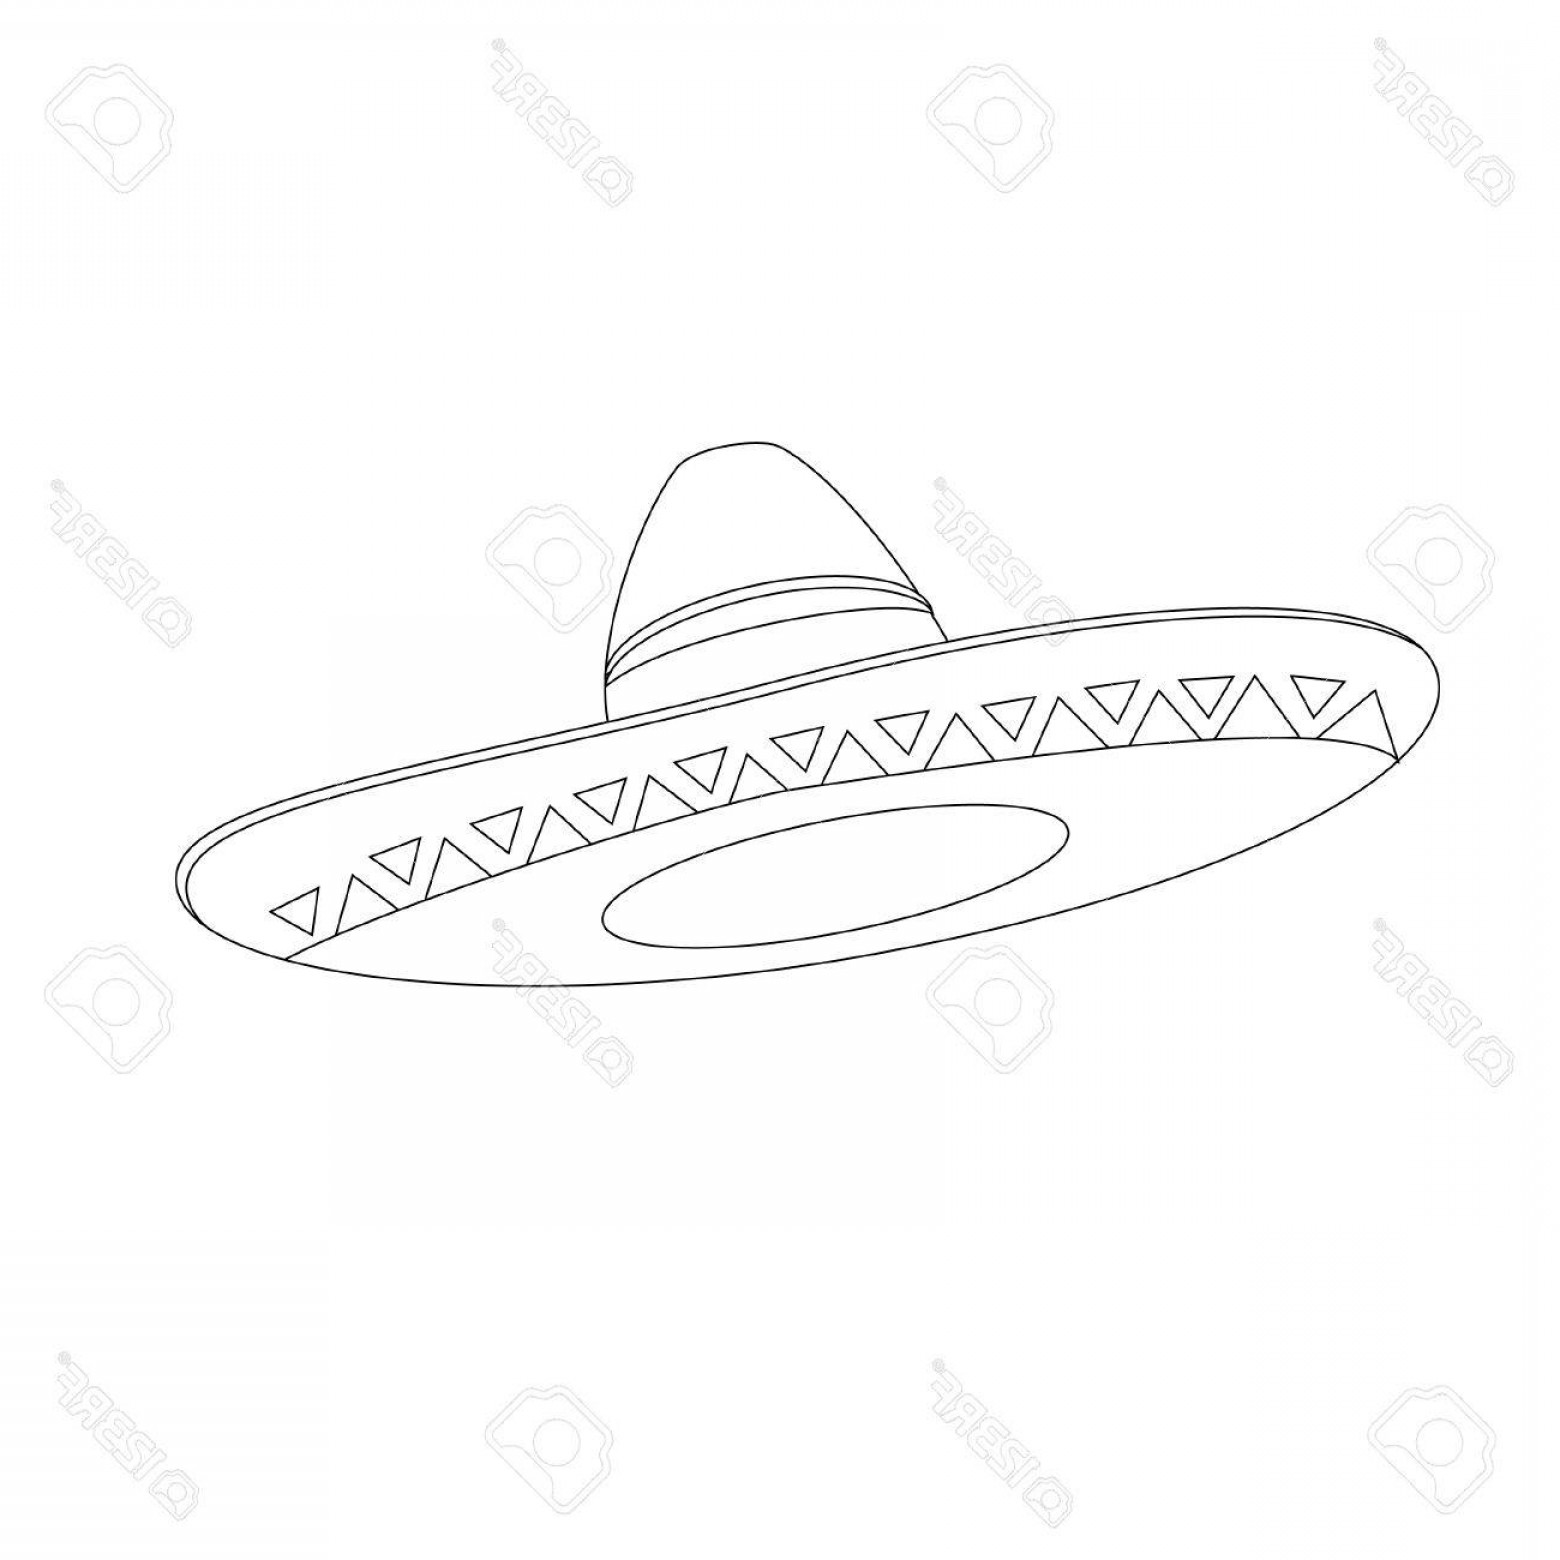 Sombrero Vector Outline: Photostock Vector Mexican Hat Outline Drawings Vector Isolated Mexican Sombrero Traditional Mexican